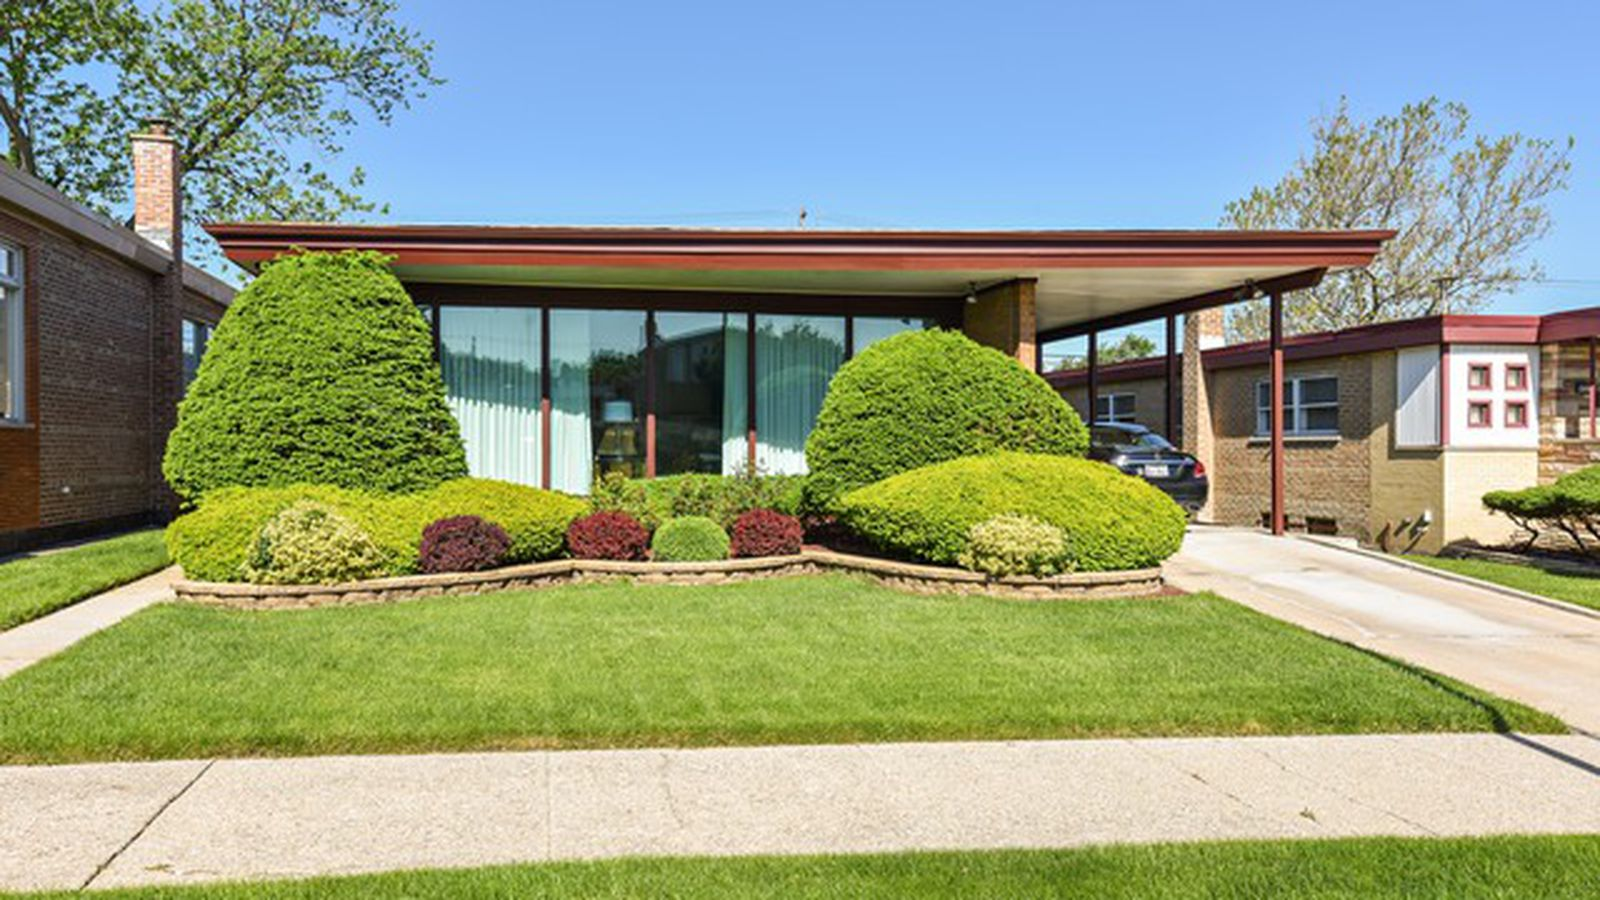 Two chicago area midcentury time capsules for under 250k for Modern homes for sale chicago